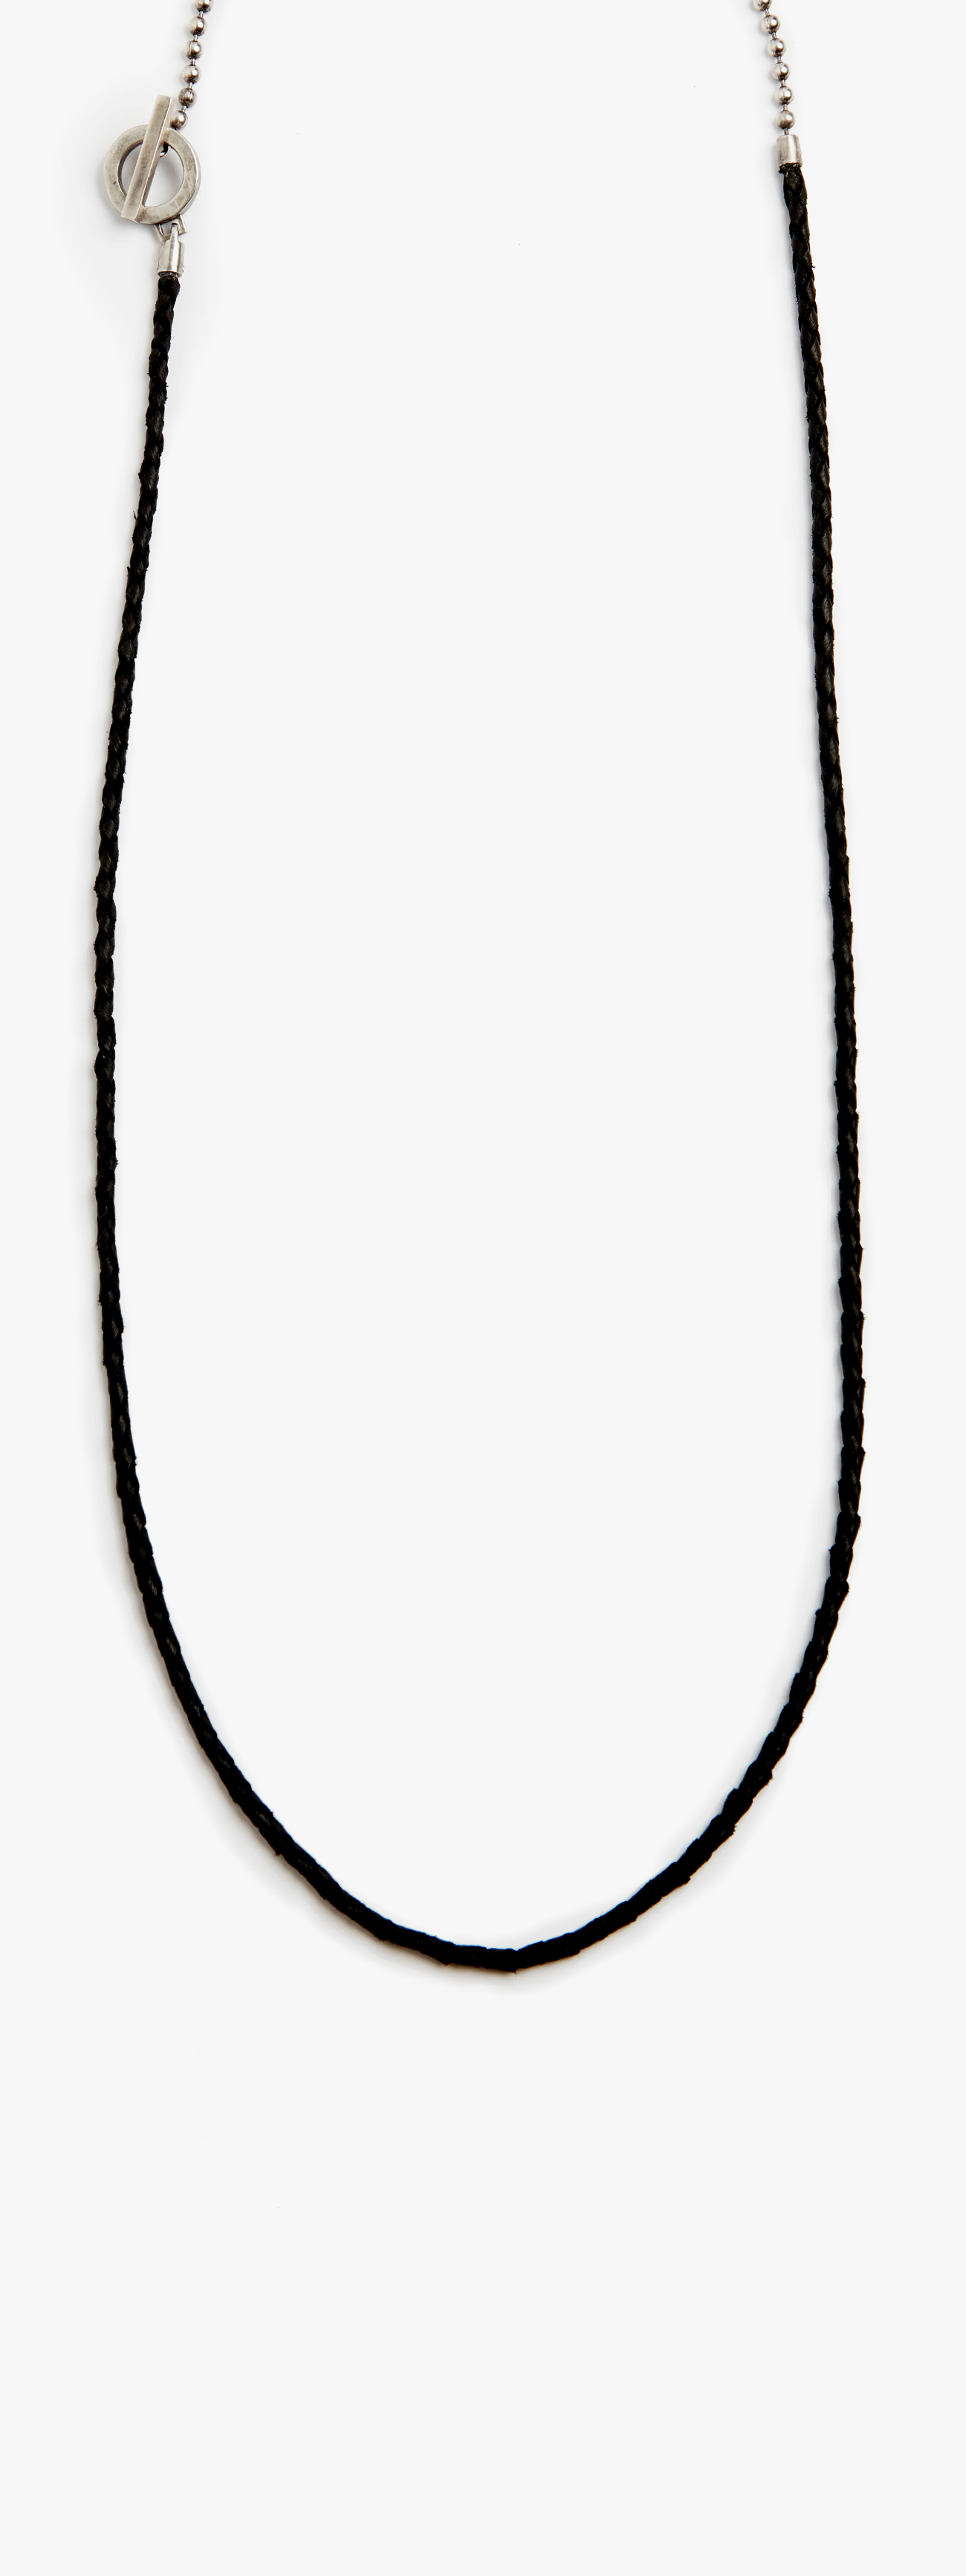 Image of Leather Cord to Sterling Silver Ball Chain Necklace